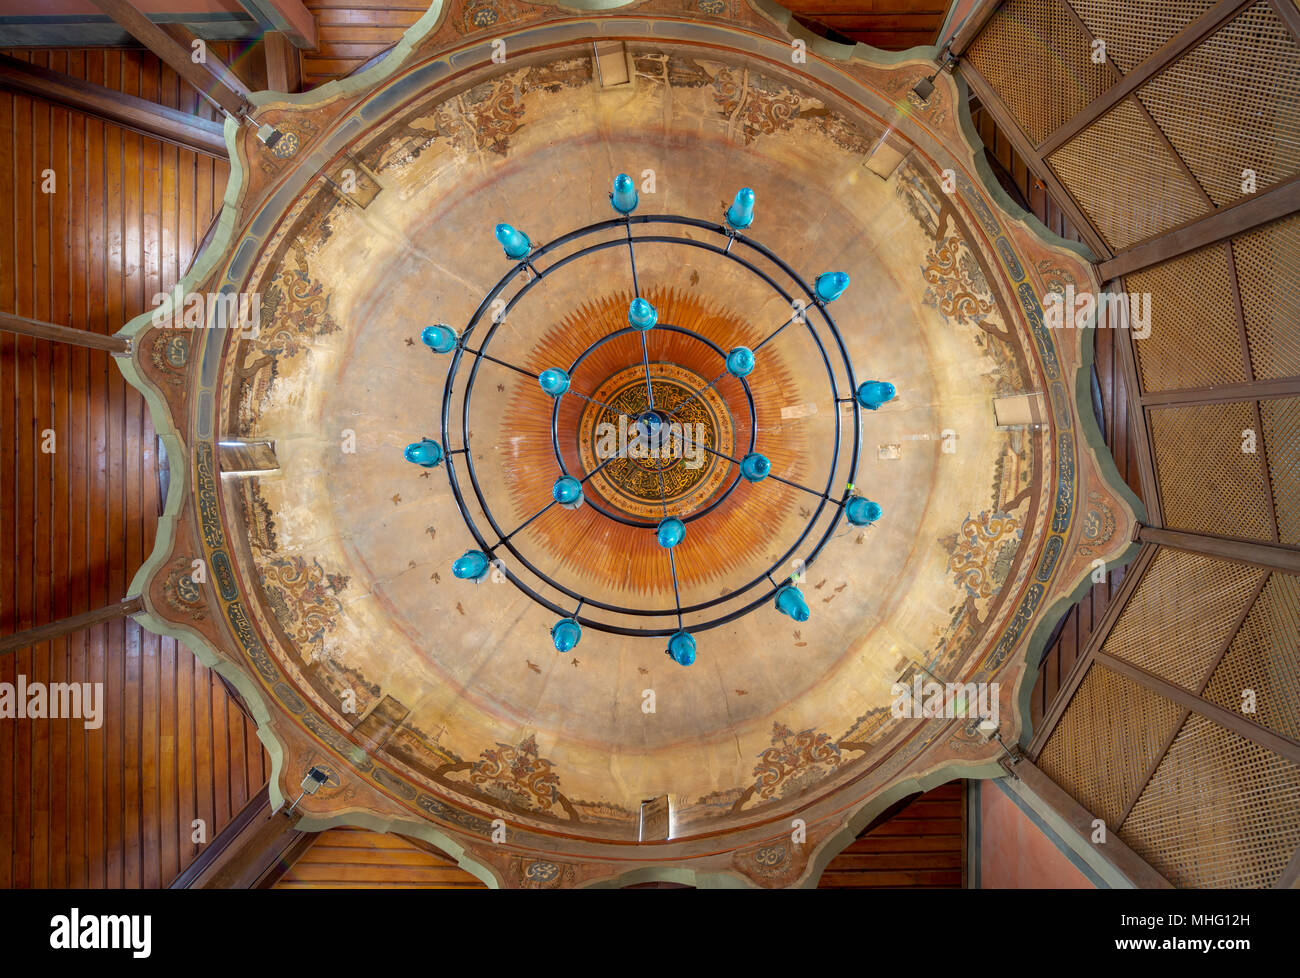 Ornate dome of Whirling Dervishes Ceremony hall at the Mevlevi Tekke, a meeting hall for the Sufi order and Whirling Dervishes, Cairo, Egypt - Stock Image